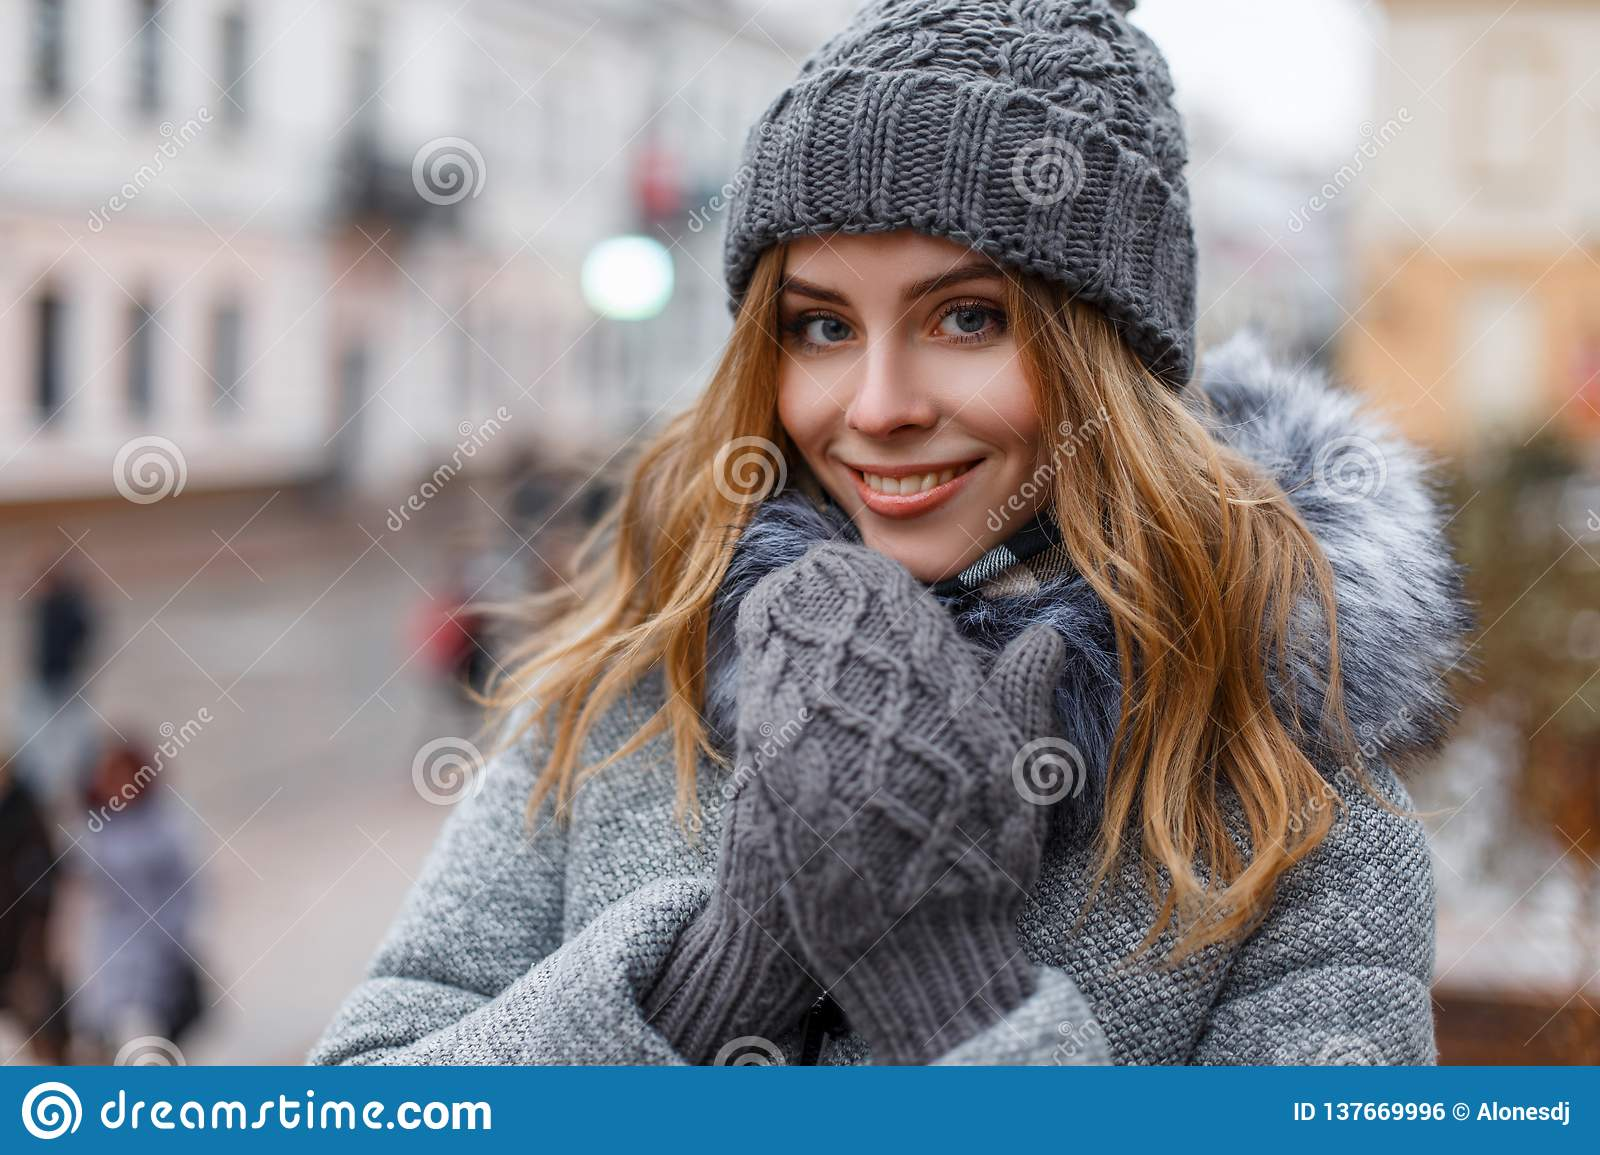 Portrait of a wonderful young woman with beautiful blue eyes with natural make-up in a sweet smile in a knitted hat